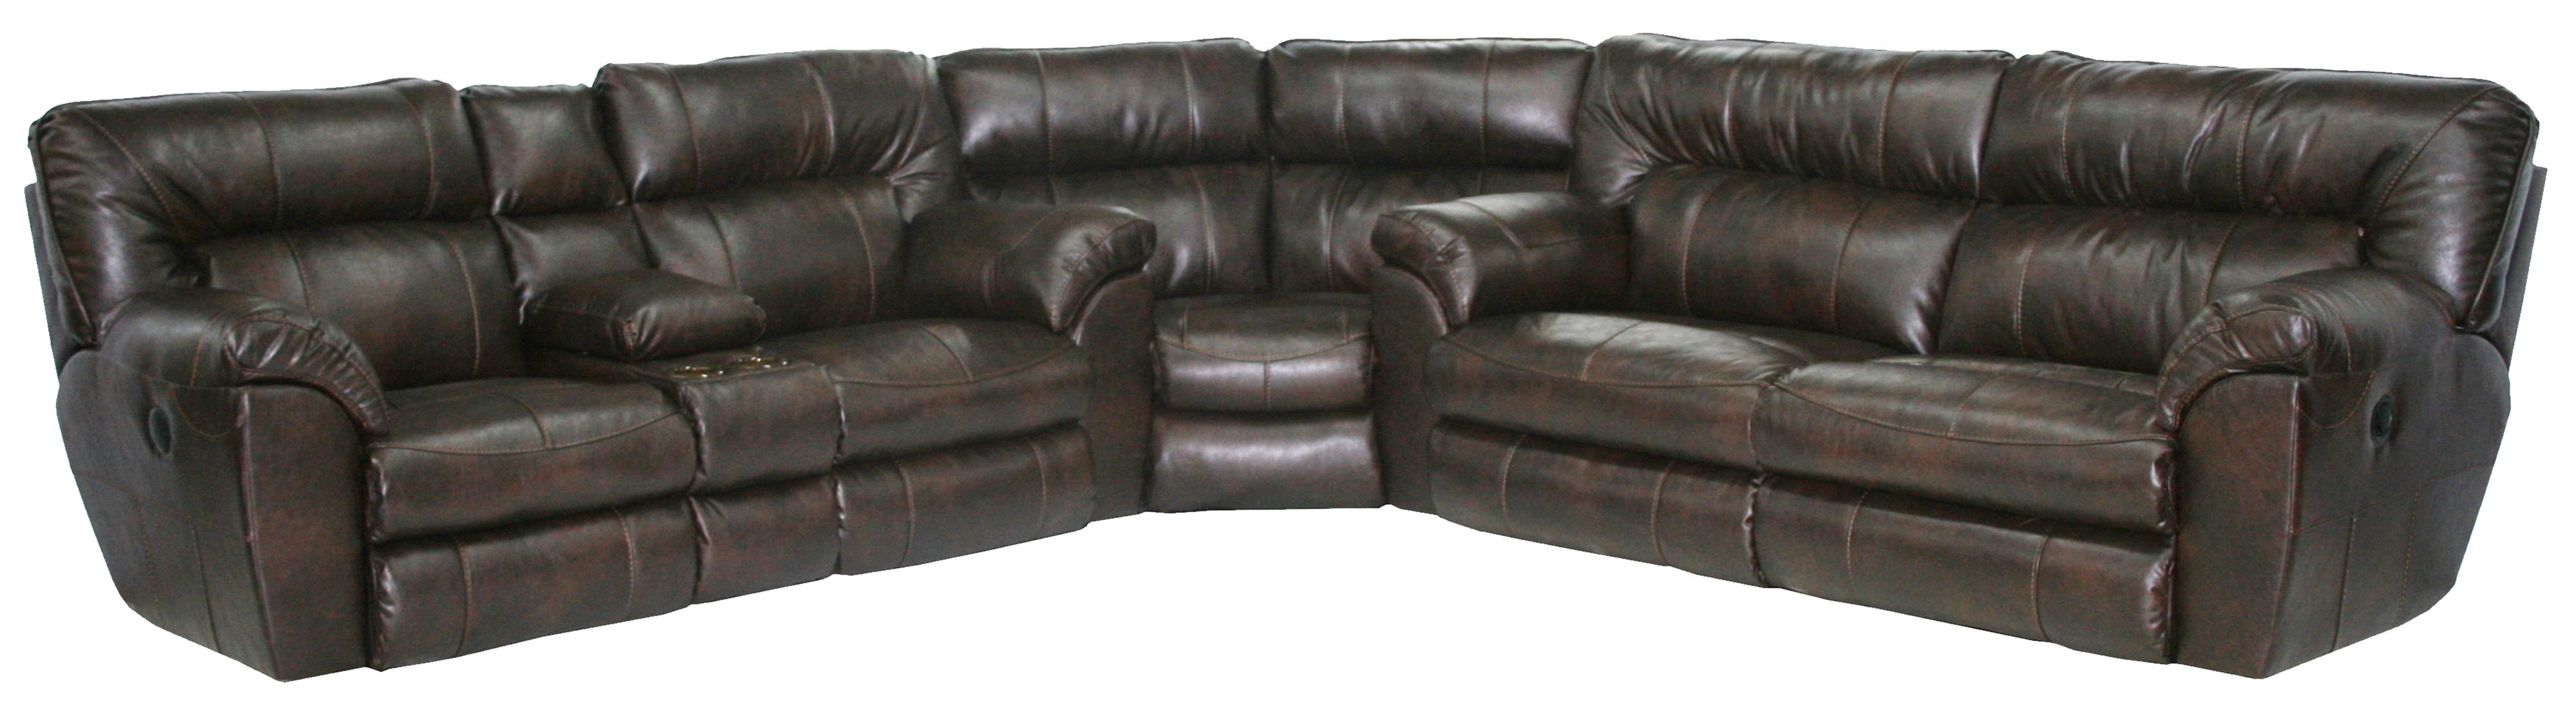 Power reclining sectional sofa with left console by Power reclining sofas and loveseats